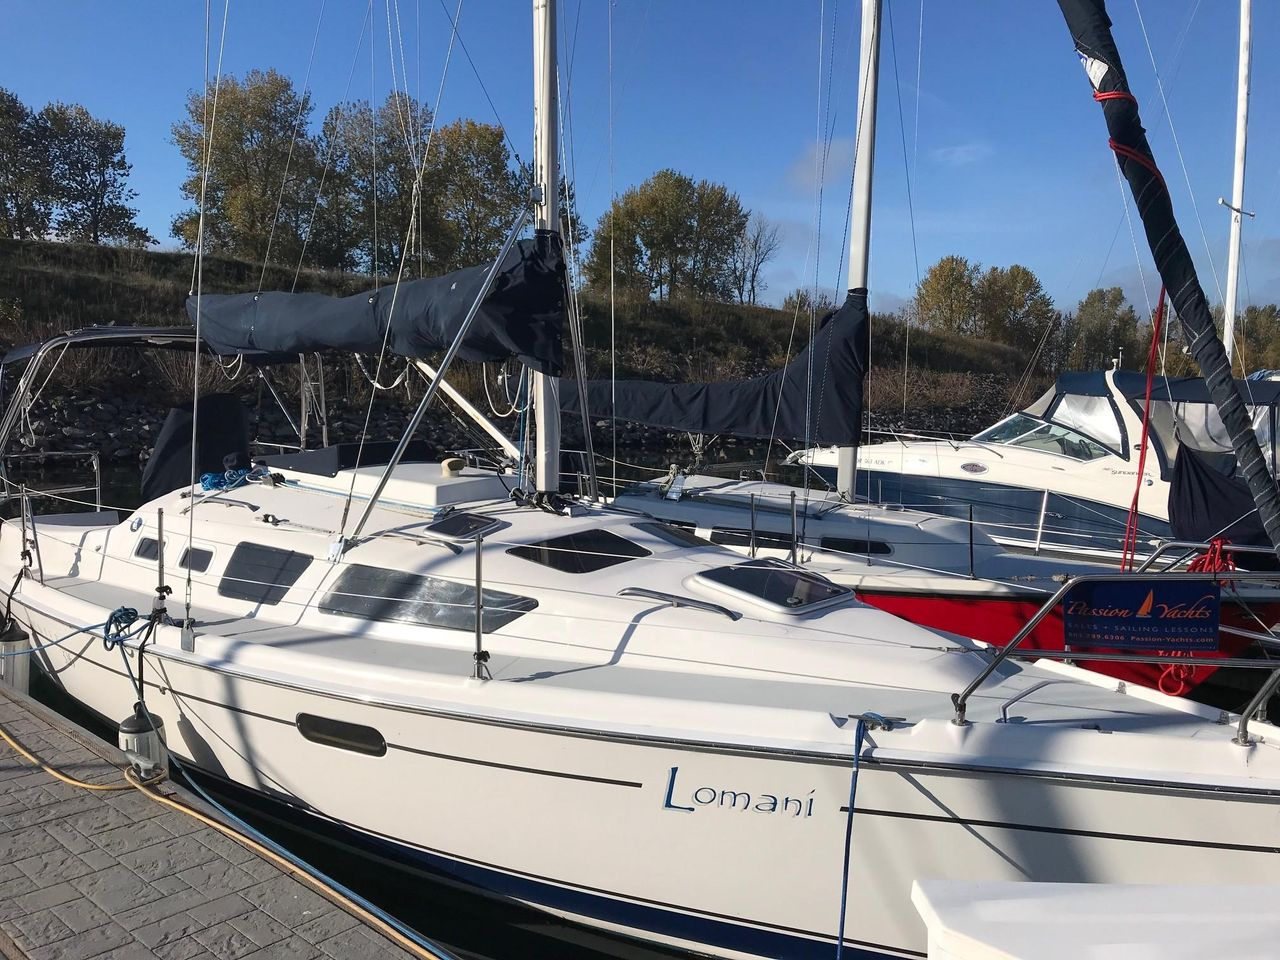 2003 Used Hunter 326 Cruiser Sailboat For Sale - $49,900 - Portland